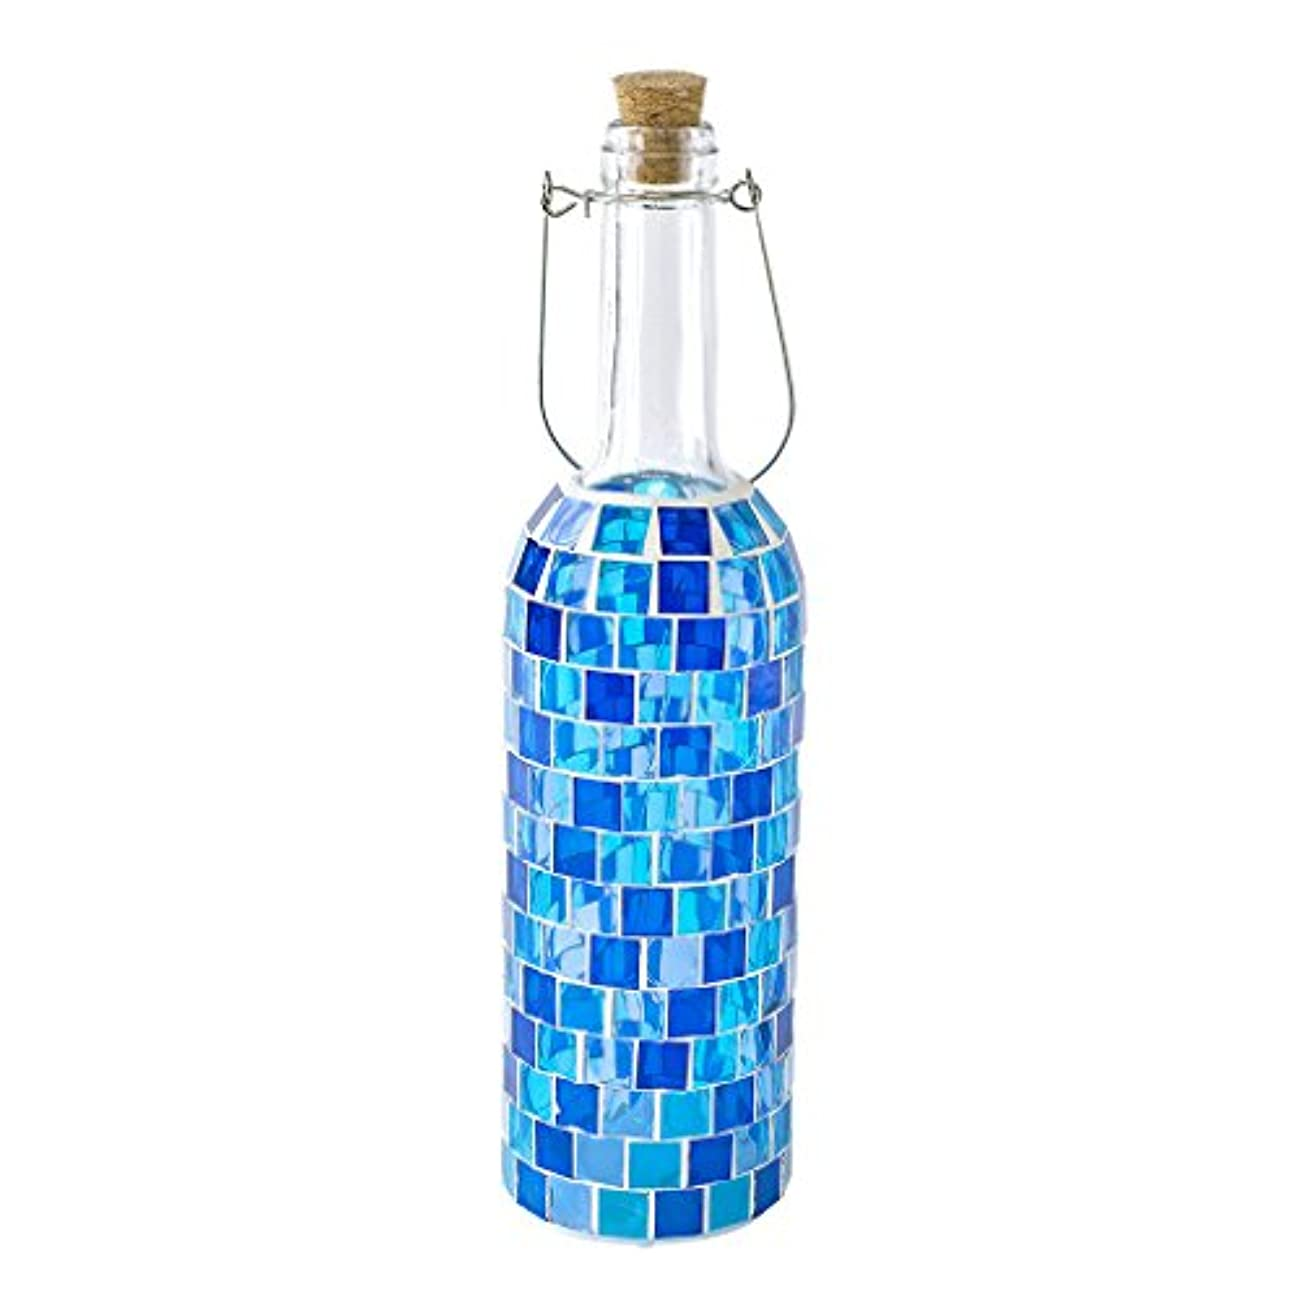 Time Concept LED Mosaic Bottle Lamp - Block Blue - Table Centerpiece, Home Decor, Battery-Operated